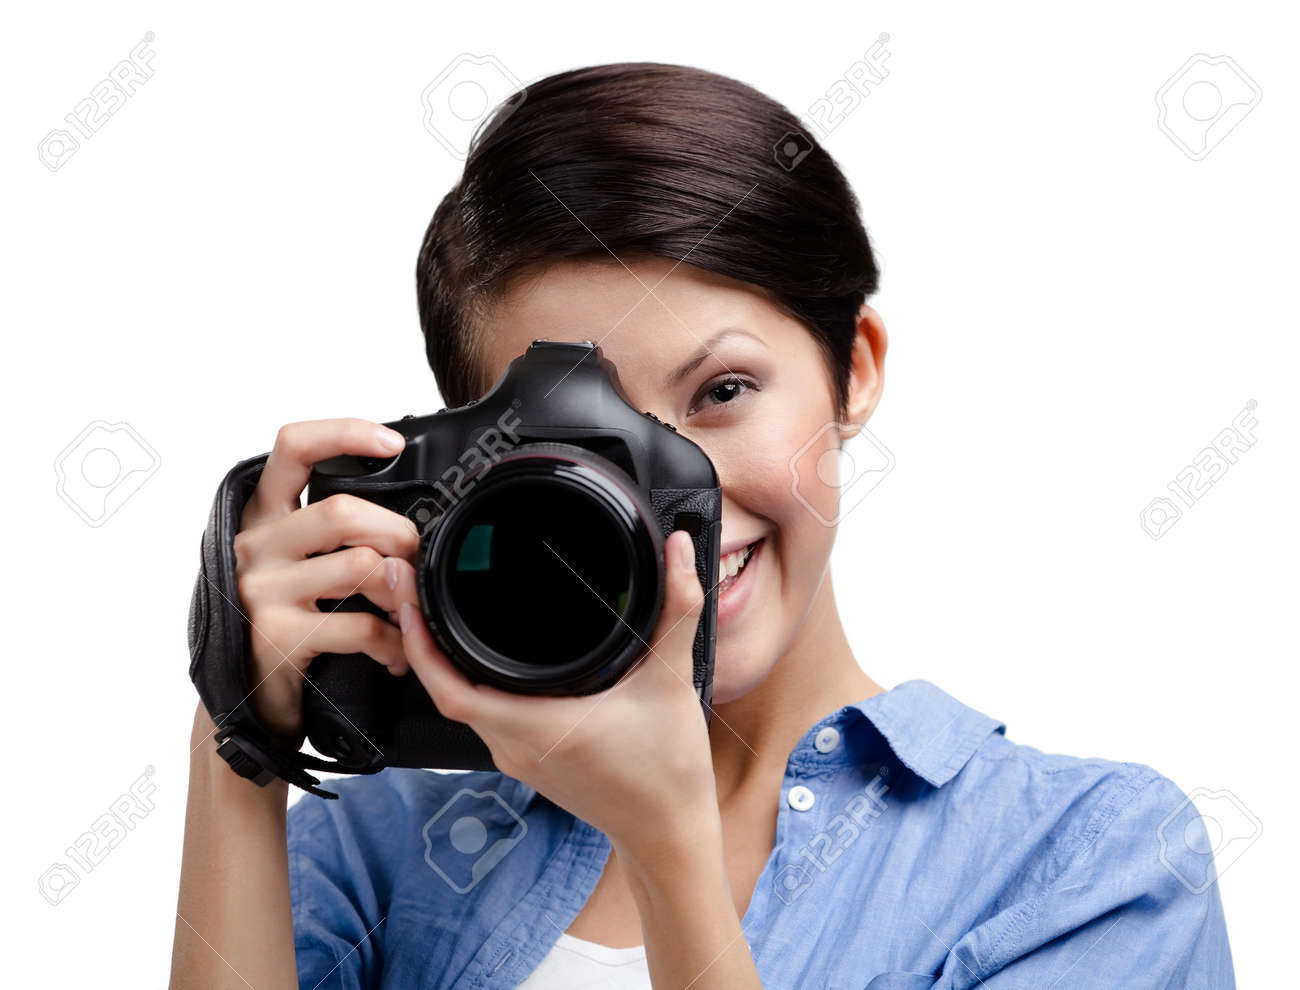 Woman-photographer takes images, isolated on white Stock Photo - 16040613